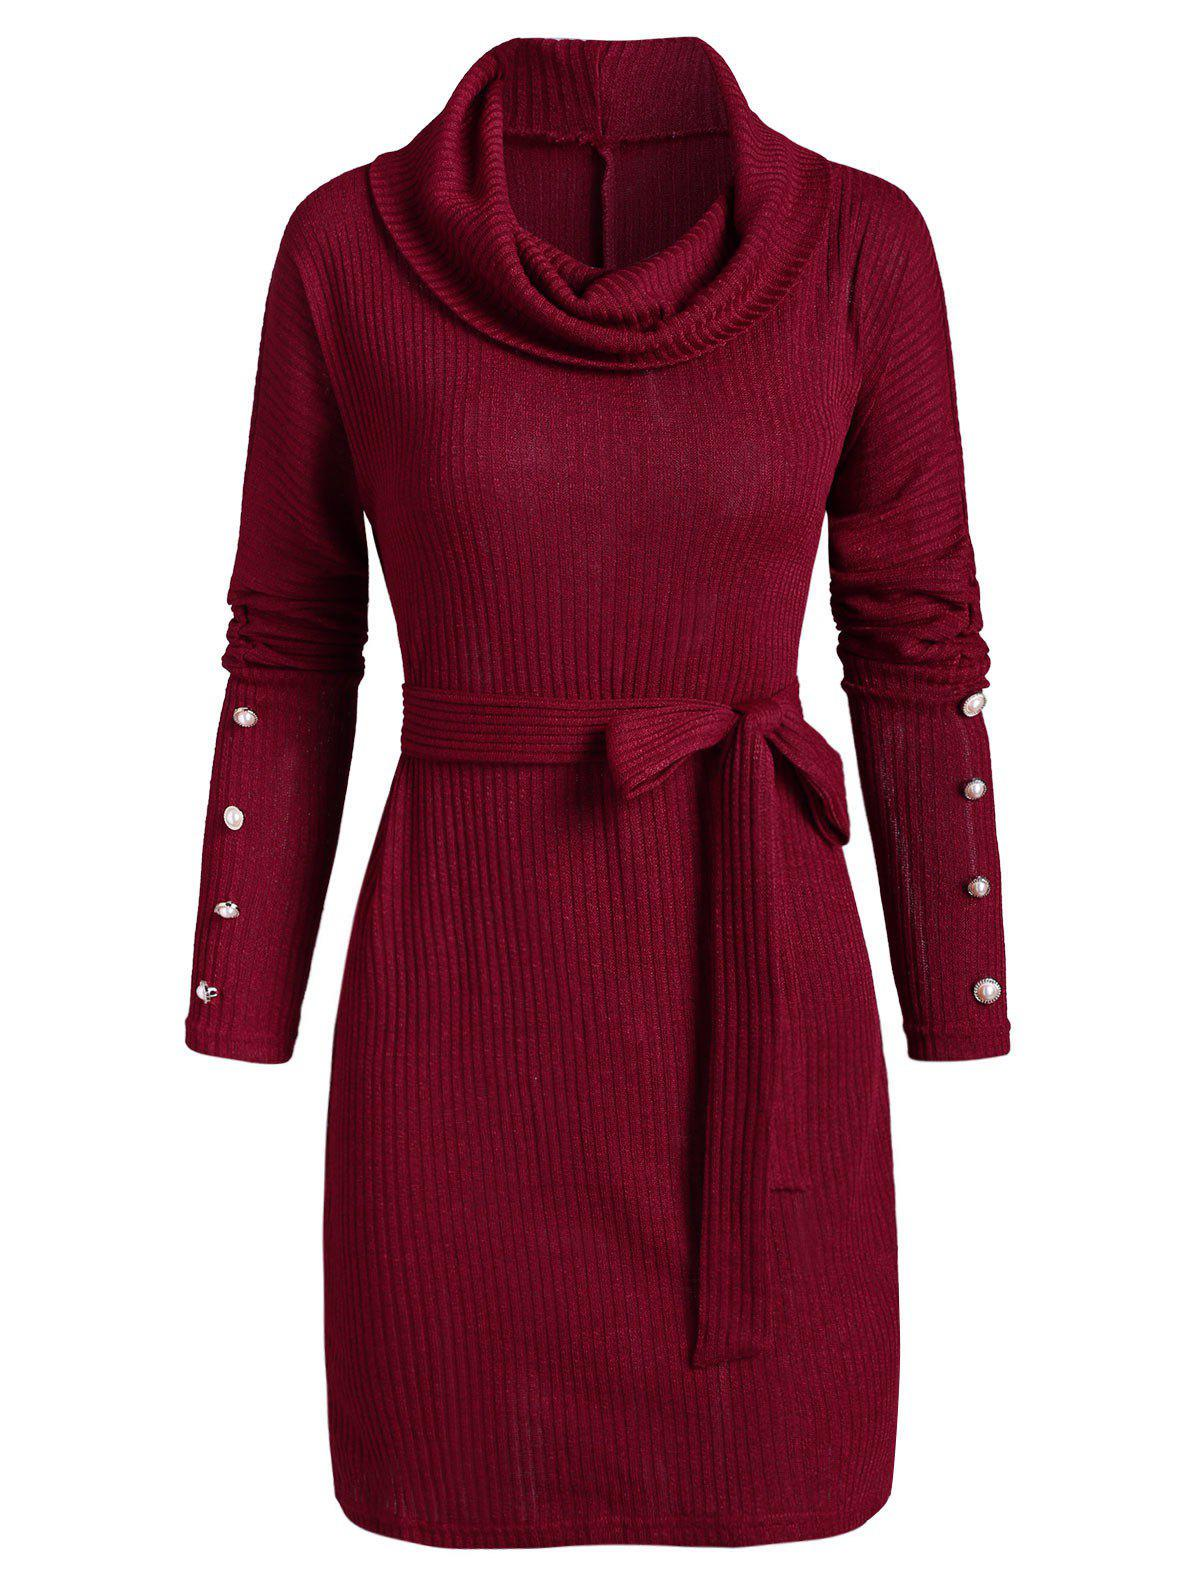 Cowl Neck Button Cuff Belted Sweater Dress - RED L